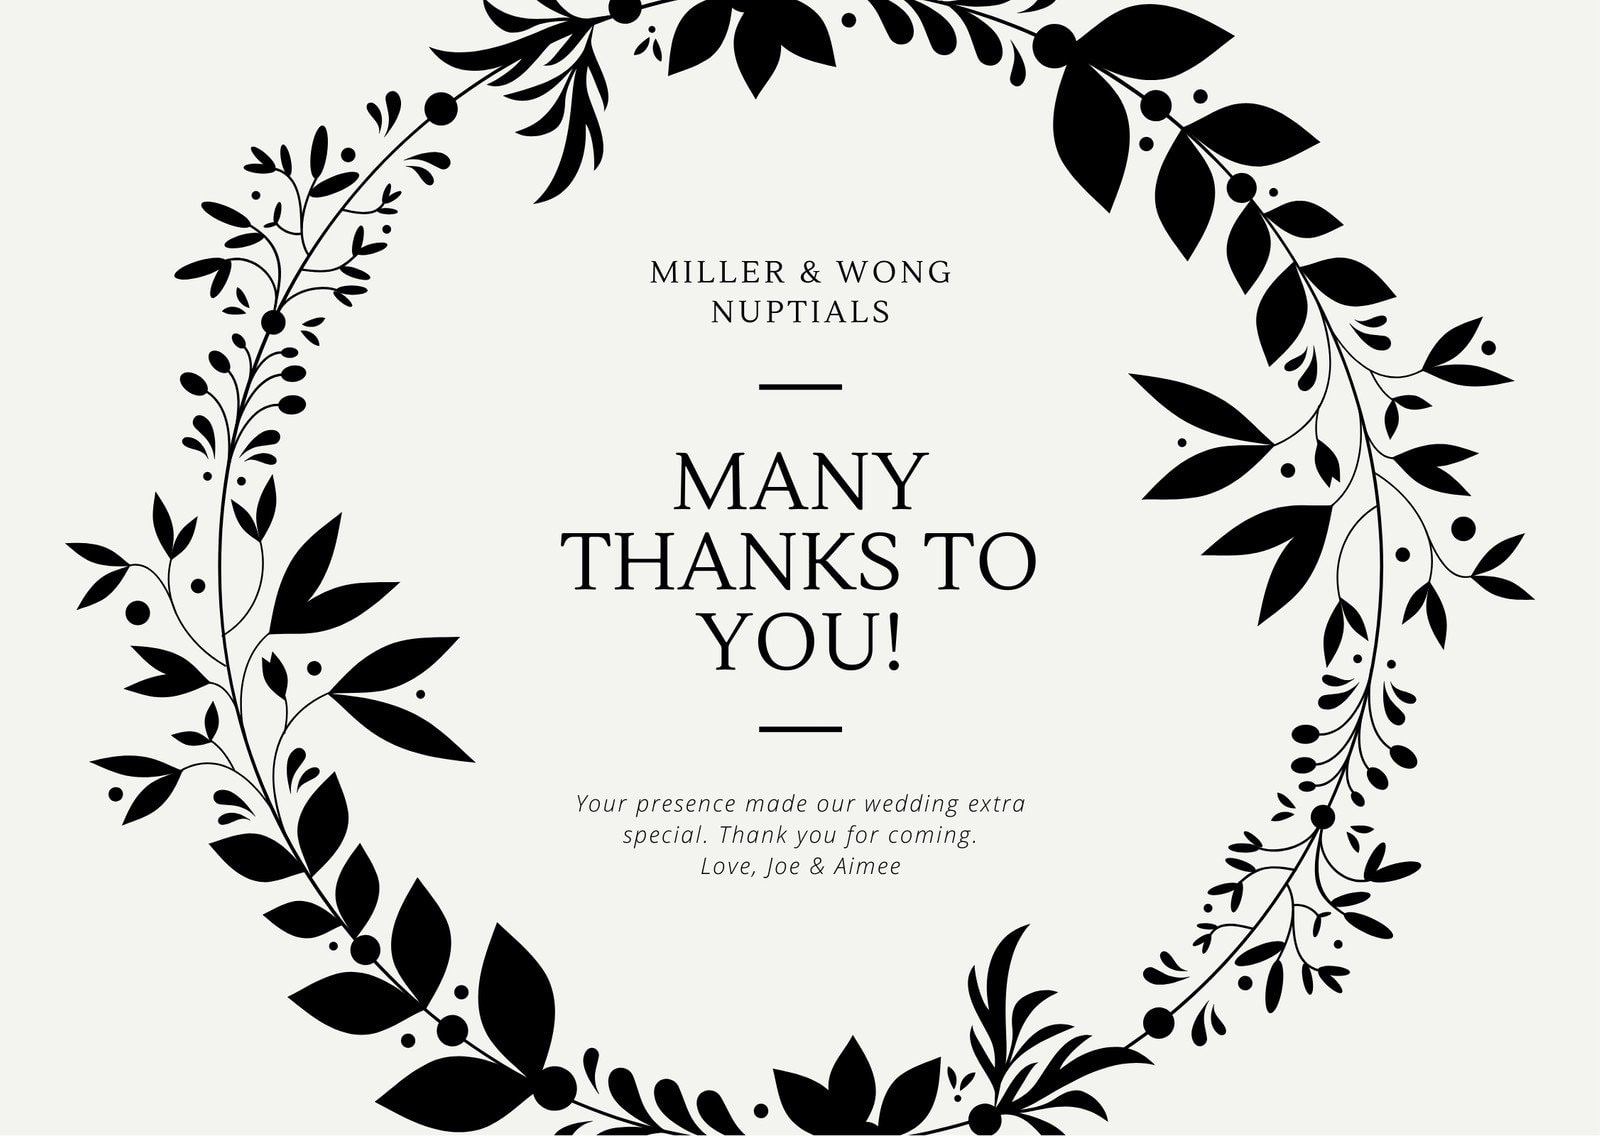 Floral Black And White Wedding Card